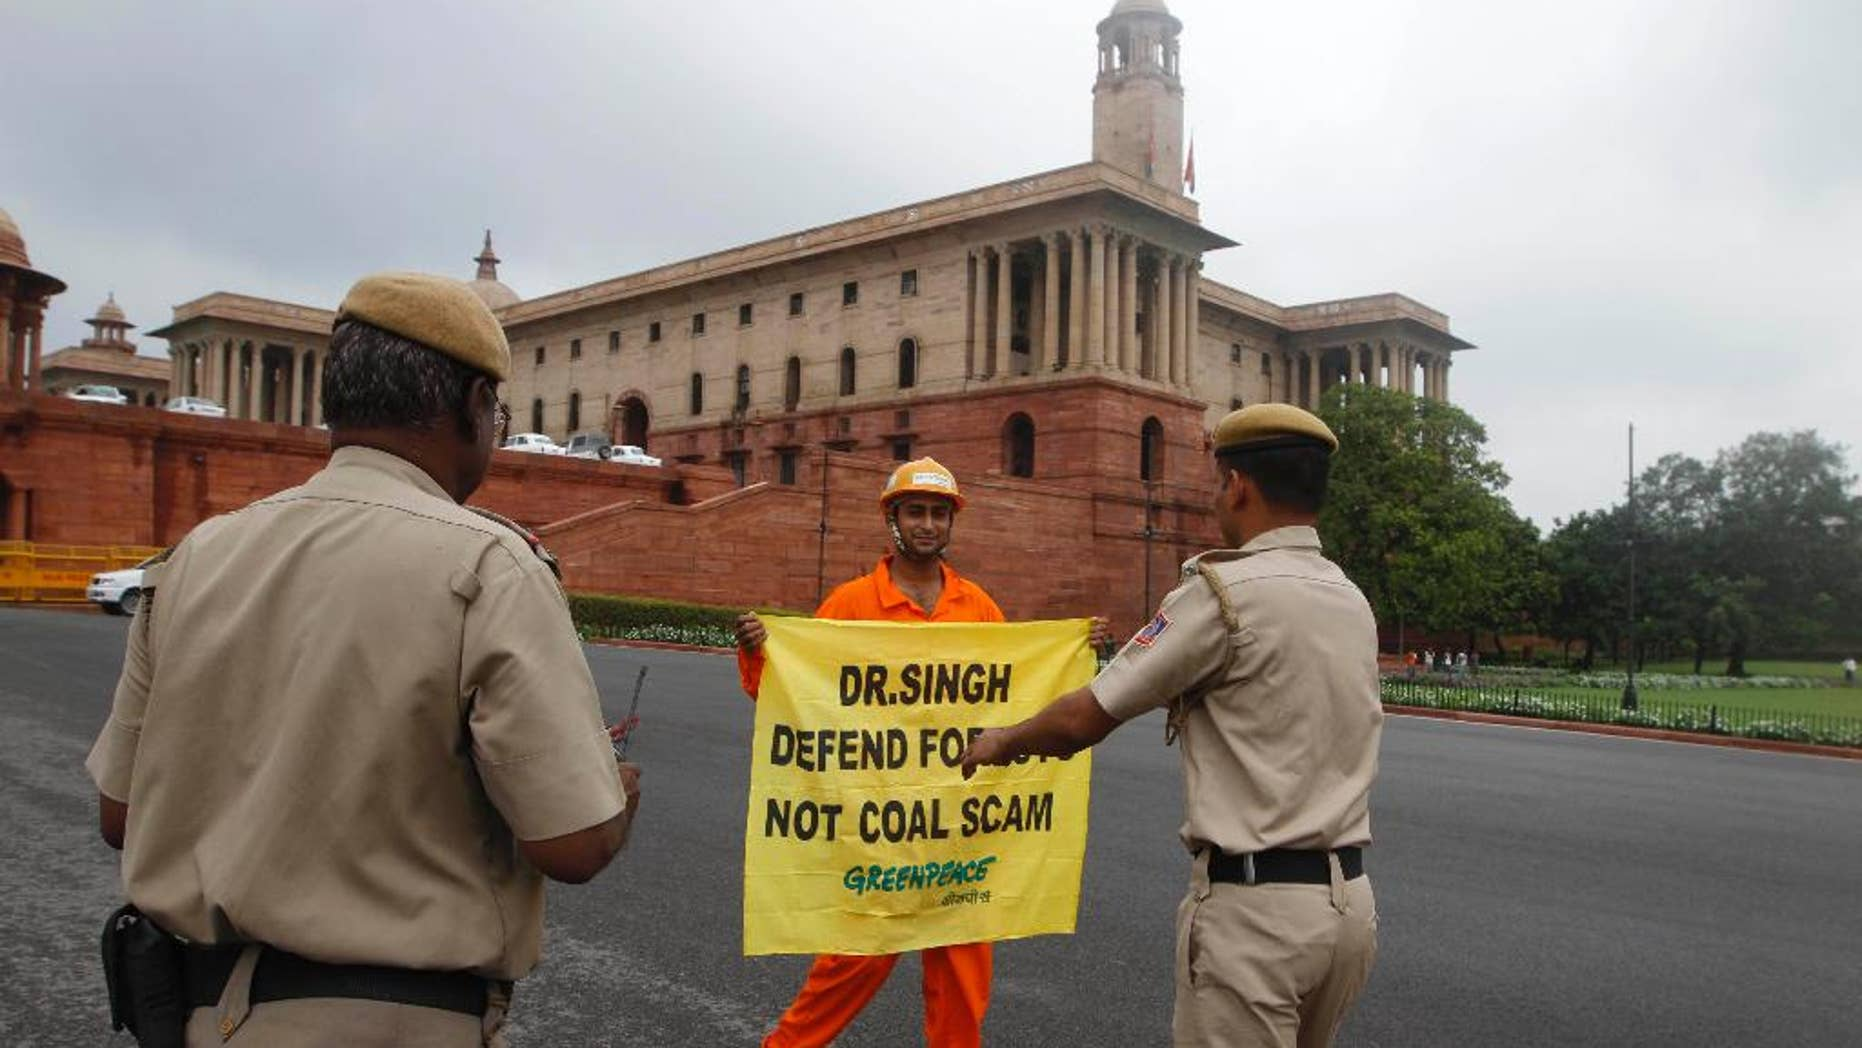 FILE- In this Aug. 21, 2012 file photo, Indian policemen prepare to remove a Greenpeace activist as he holds a banner near the area of government offices and the Indian Parliament in New Delhi, India. India's home ministry says it is temporarily suspending the registration of Greenpeace India because it is under-reporting foreign contributions and using them without government approval. (AP Photo, file)